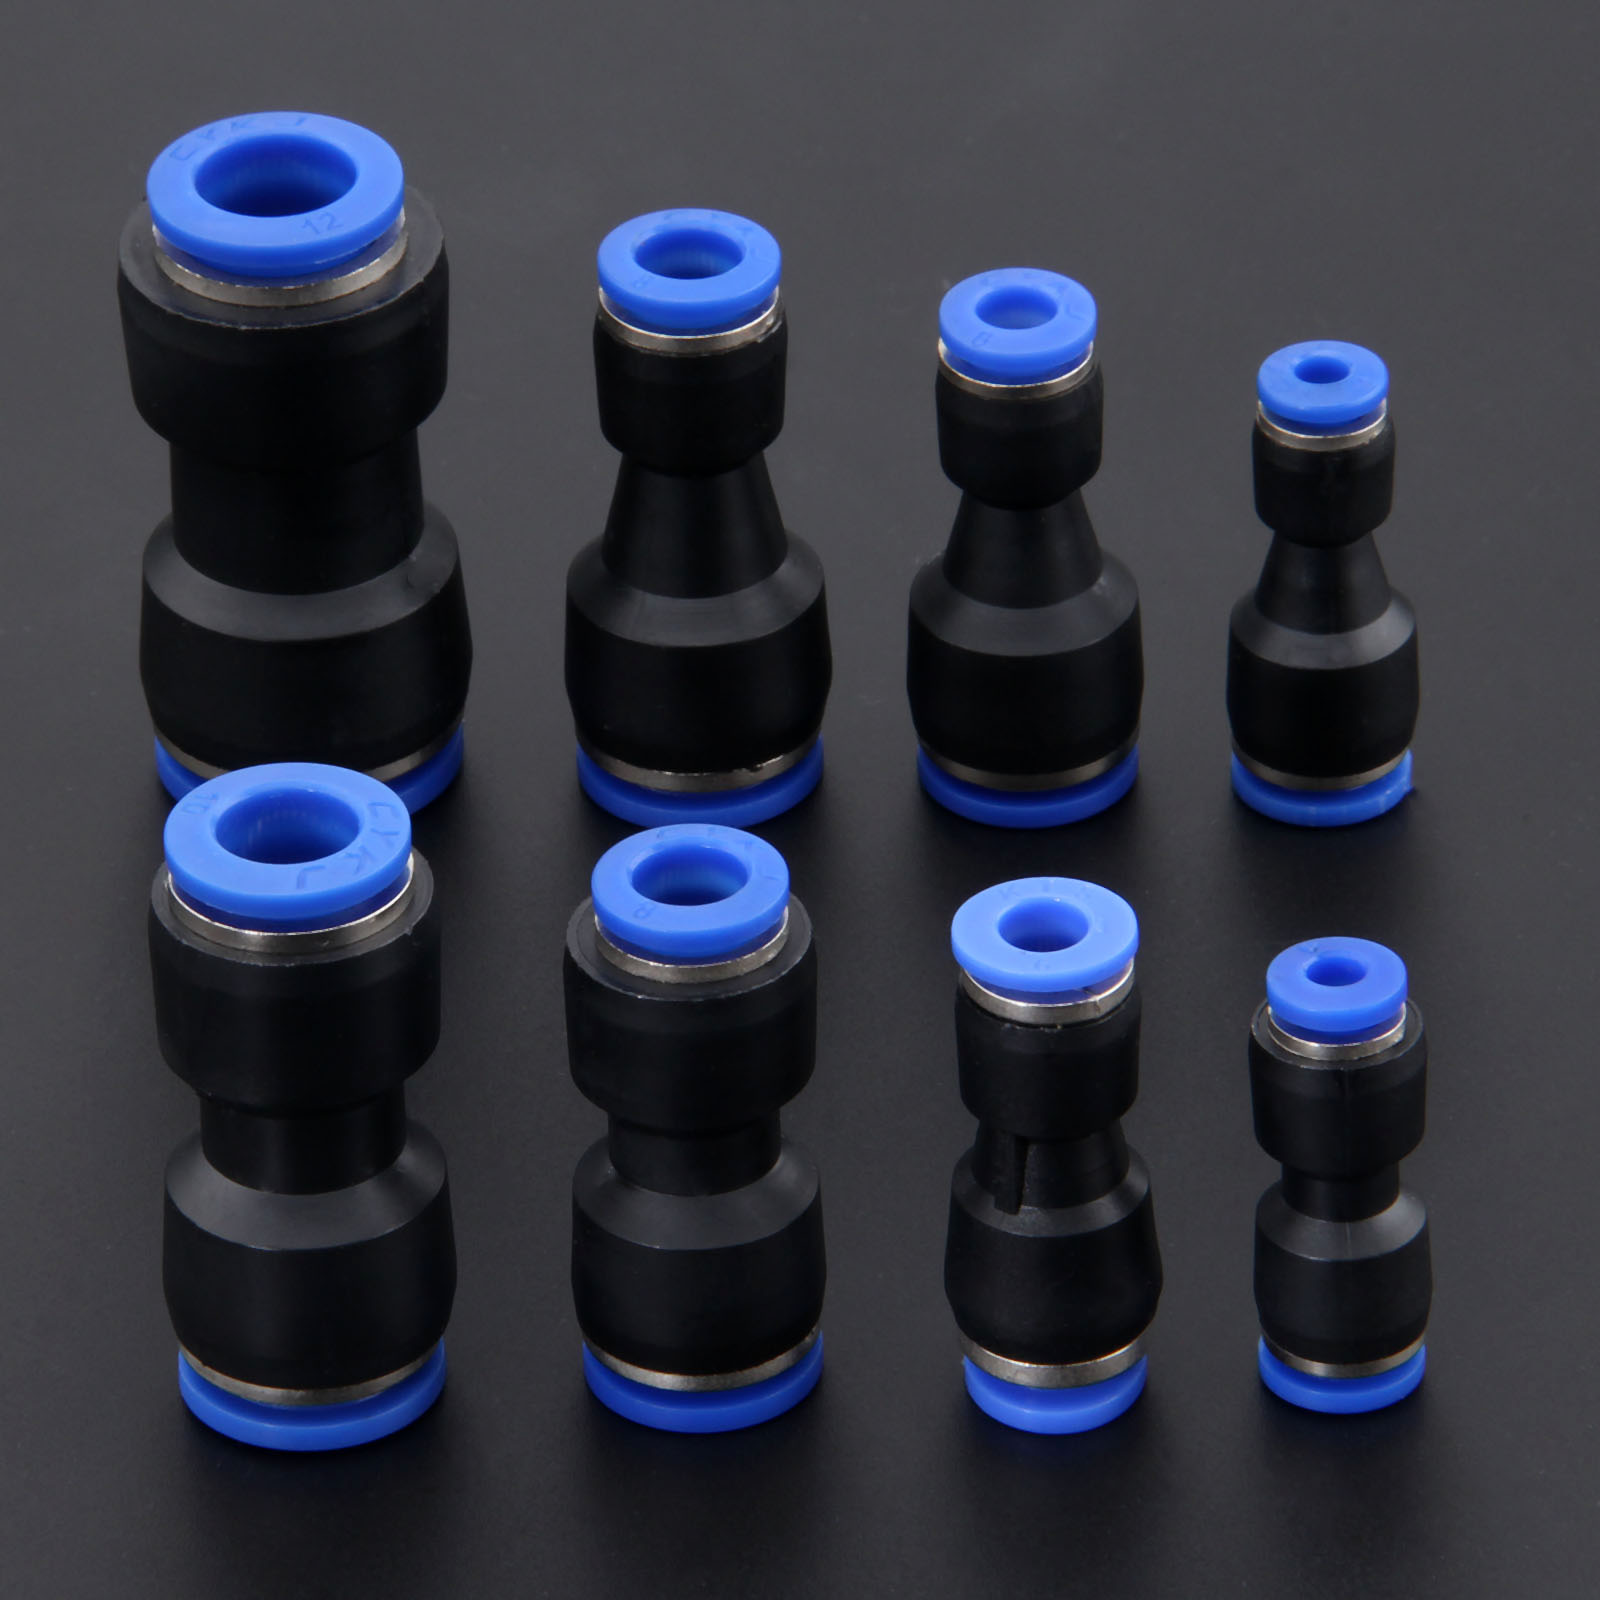 5Pcs//lot Pneumatic Fittings Push In Straight Reducer Connectors For Air Vacuum Water Hose Plastic Pneumatic Parts 7 Size 4-12mm,10mm to 6mm